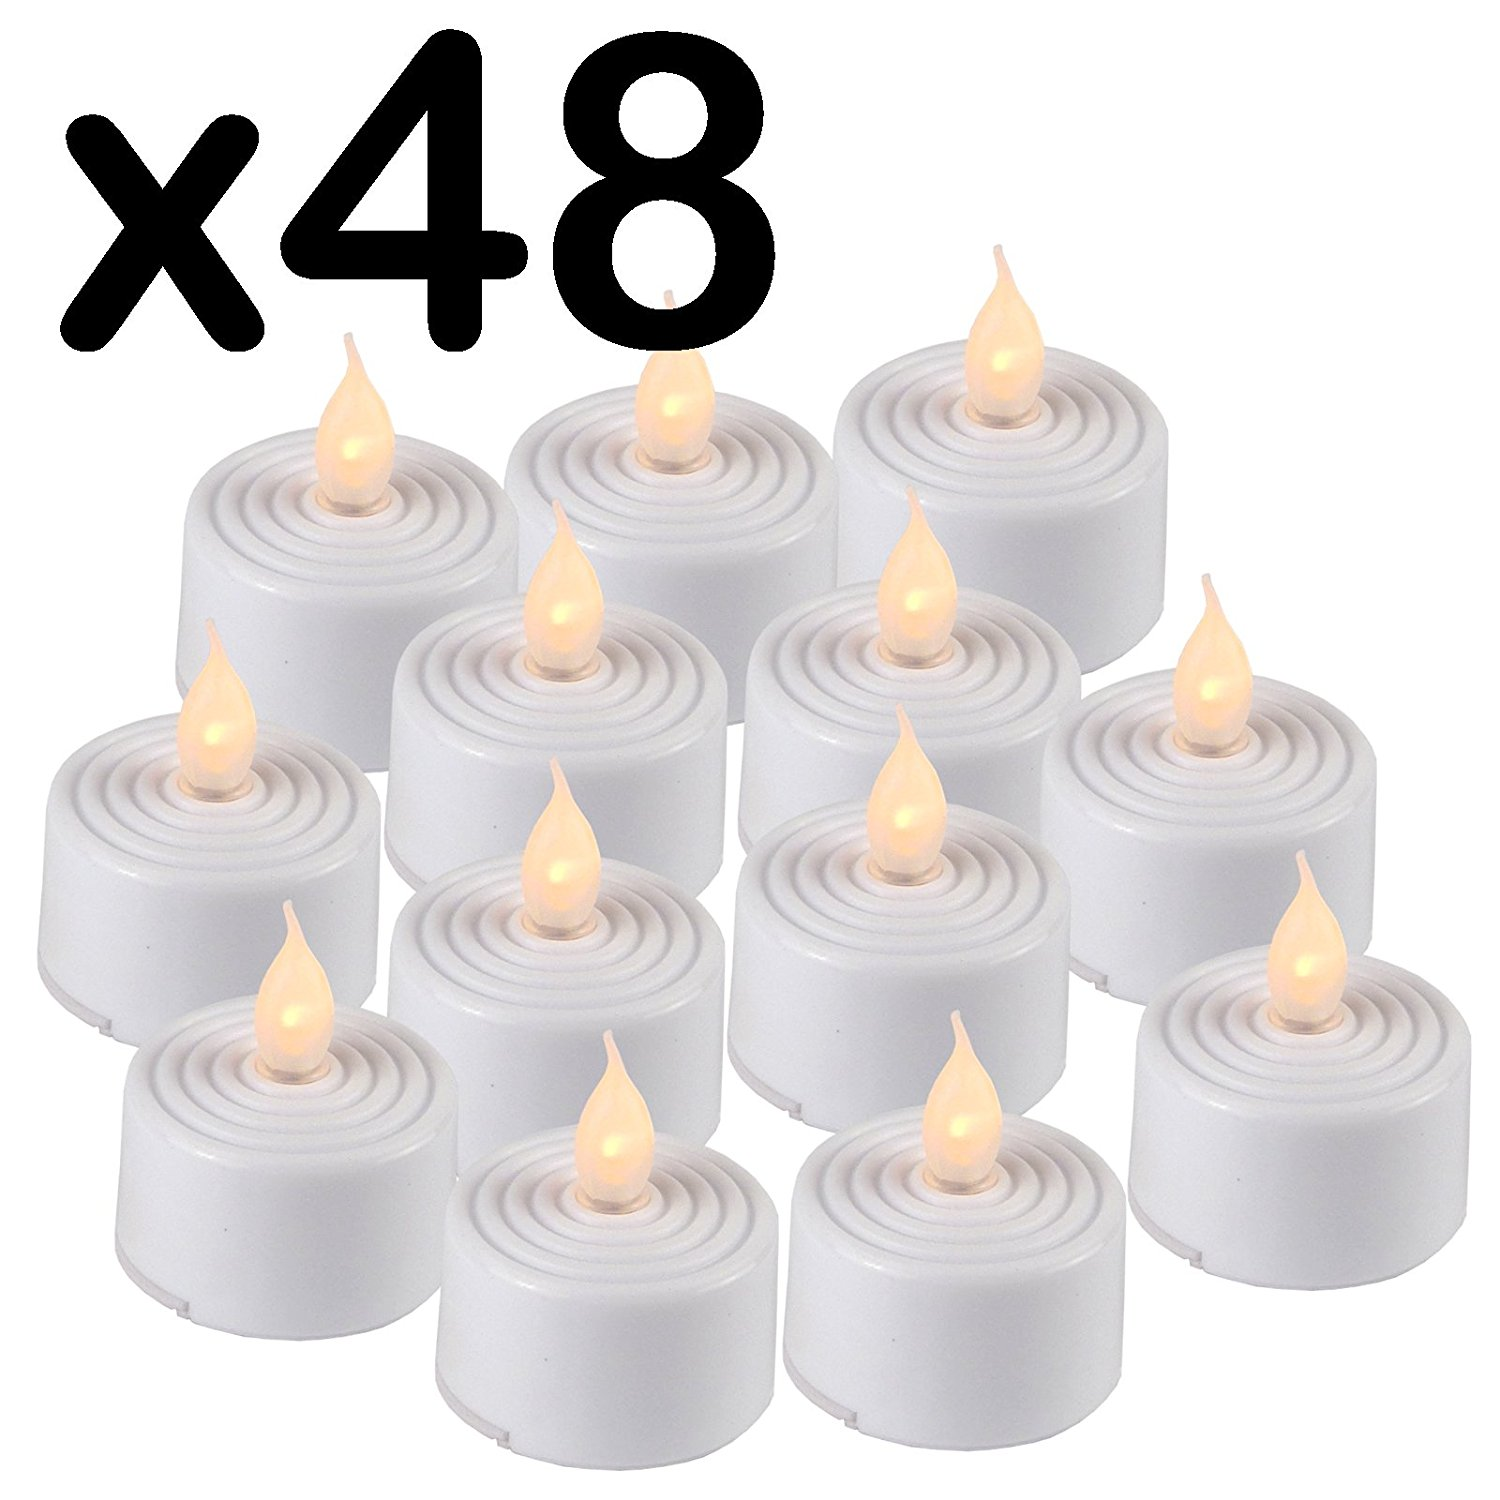 Flickering birthday candle clipart picture transparent stock 48 x LED FLICKERING TEA LIGHT CANDLES - INCLUDED BATTERY OPERATED ... picture transparent stock